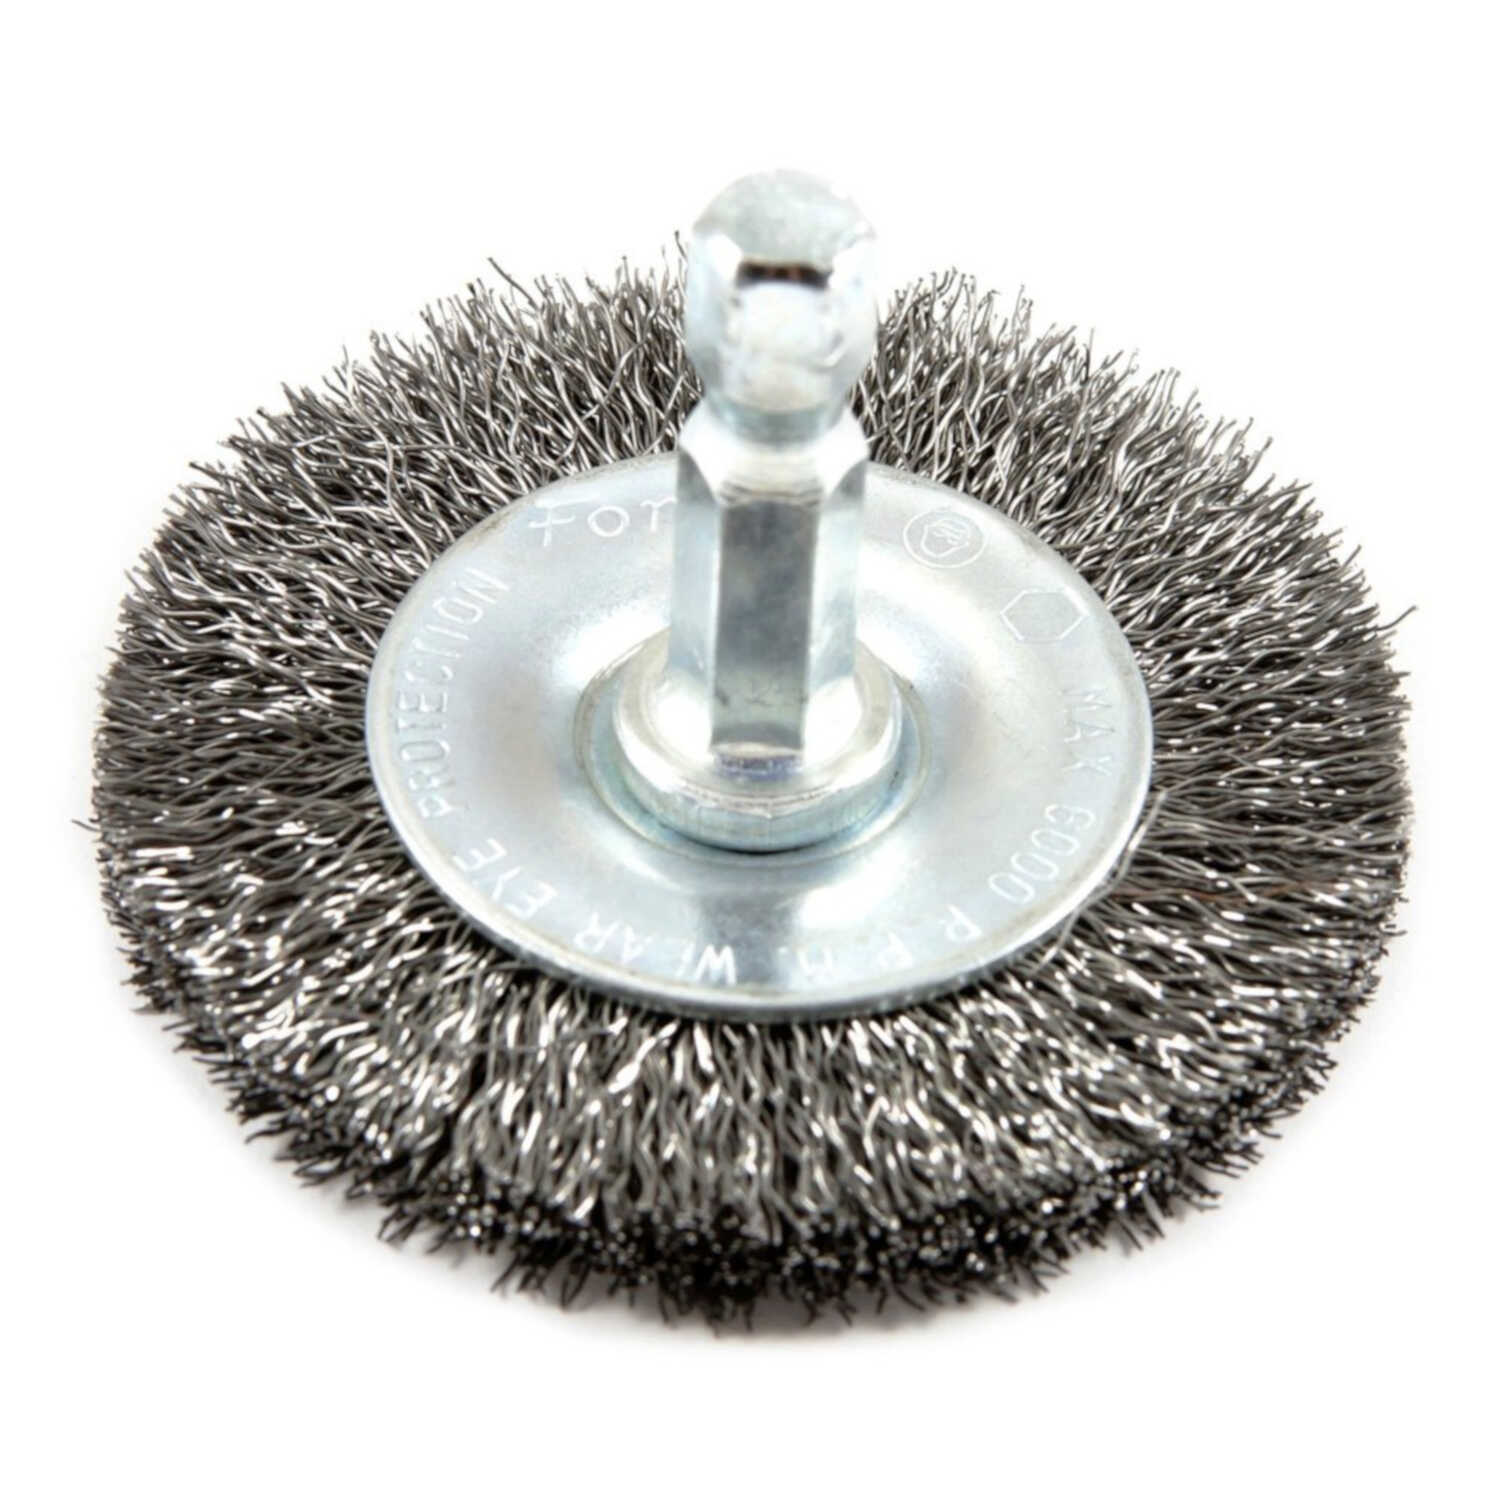 Forney  3 in. Crimped  Metal  6000 rpm Wire Wheel Brush  1 pc.